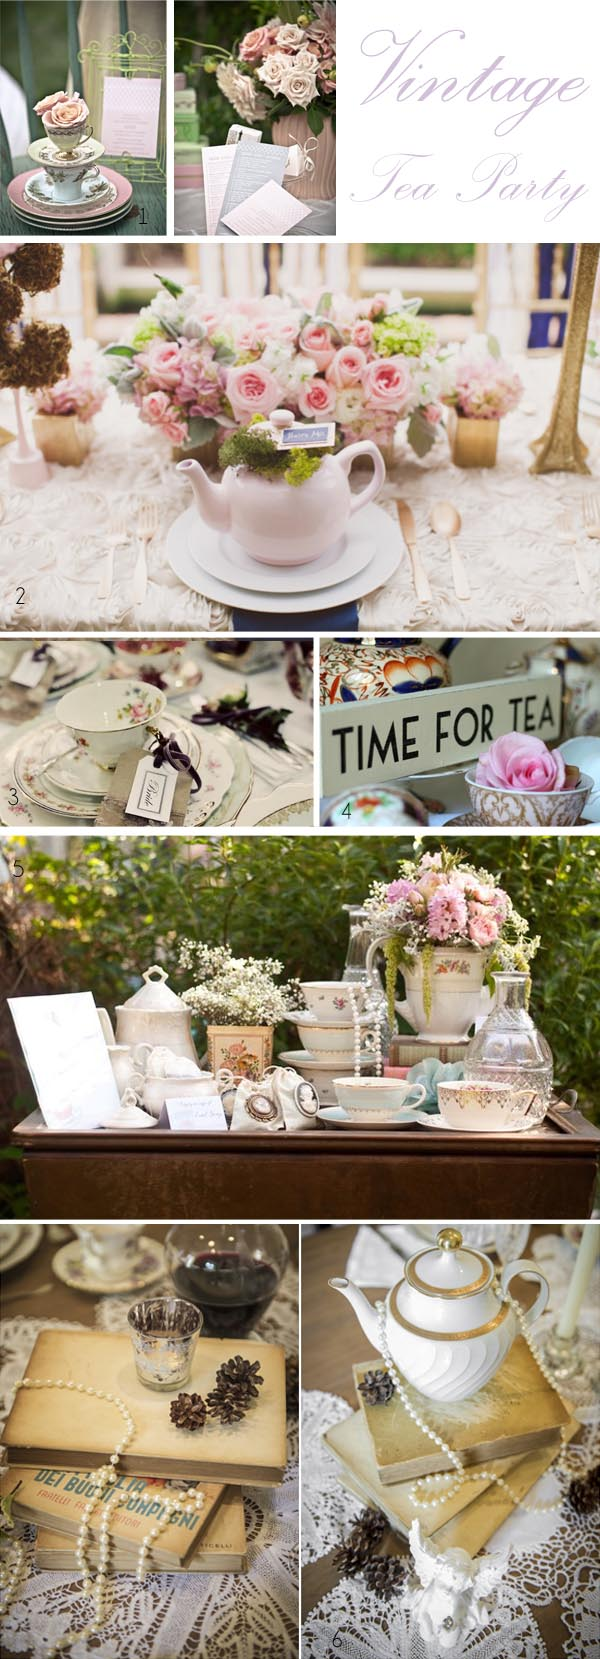 vintage wedding ideas vintage tea party wedding decorations